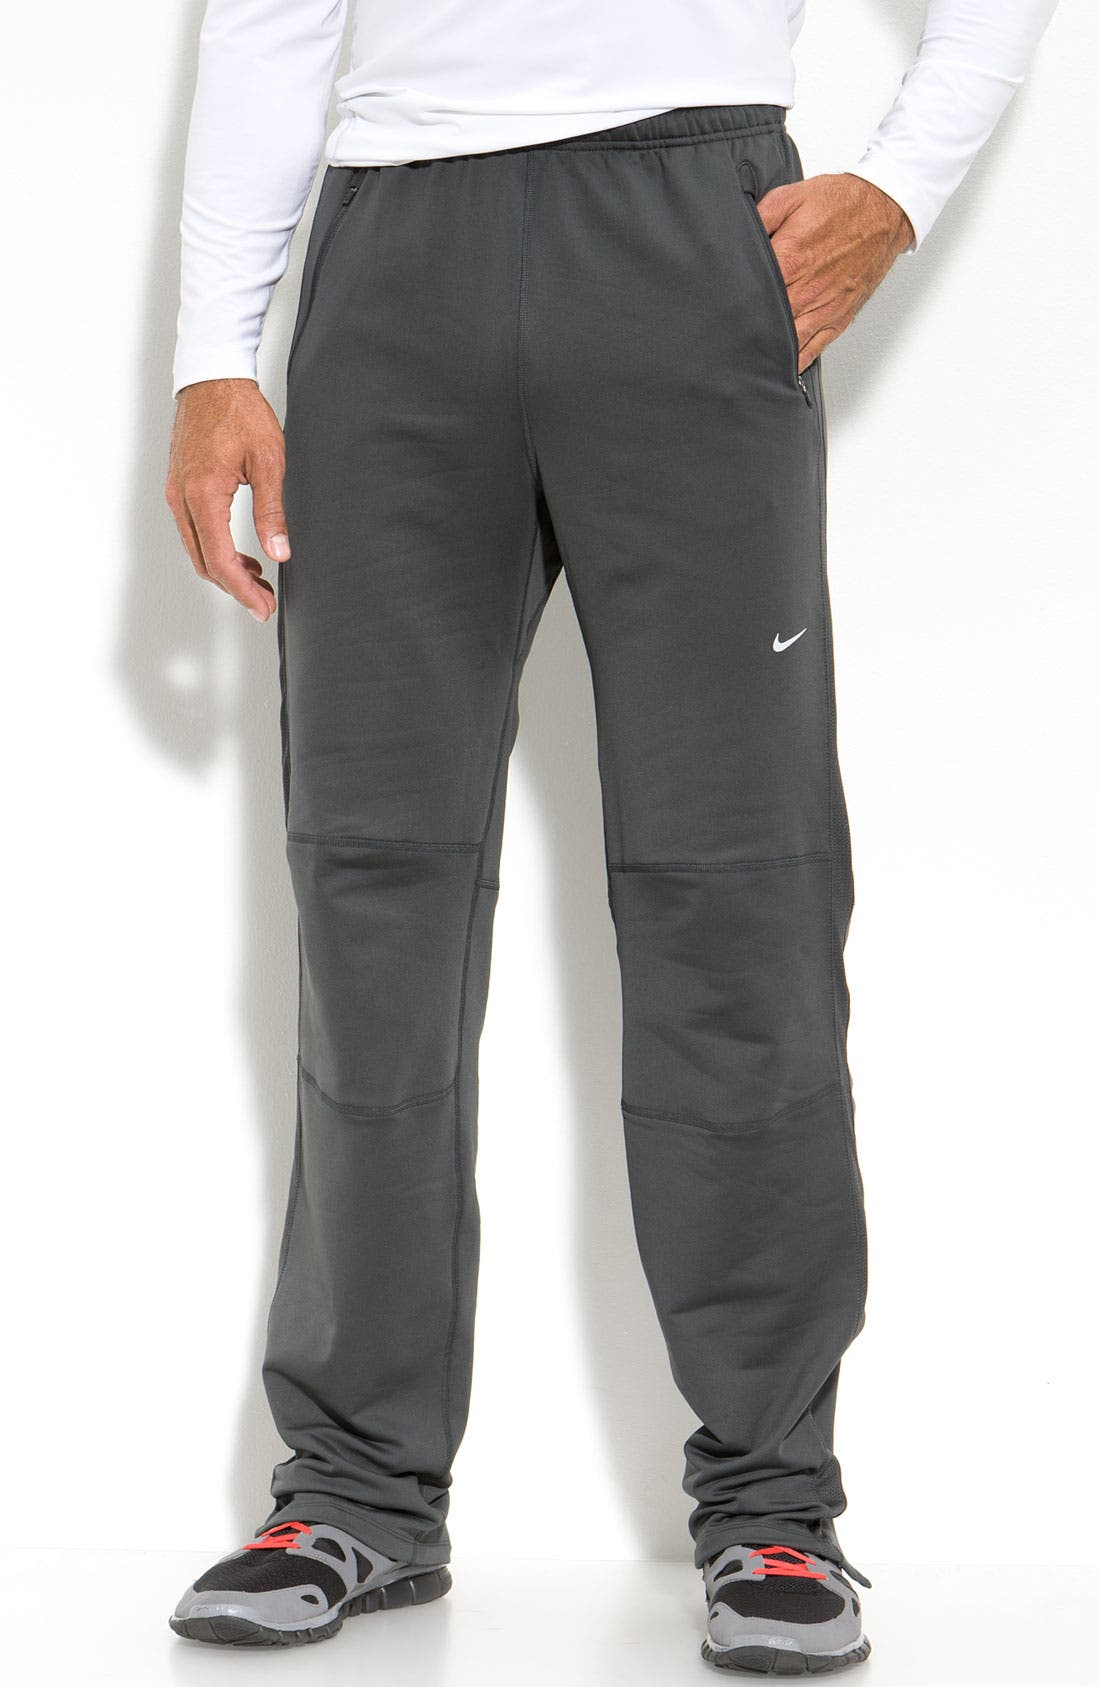 Alternate Image 1 Selected - Nike 'Element' Thermal Pants